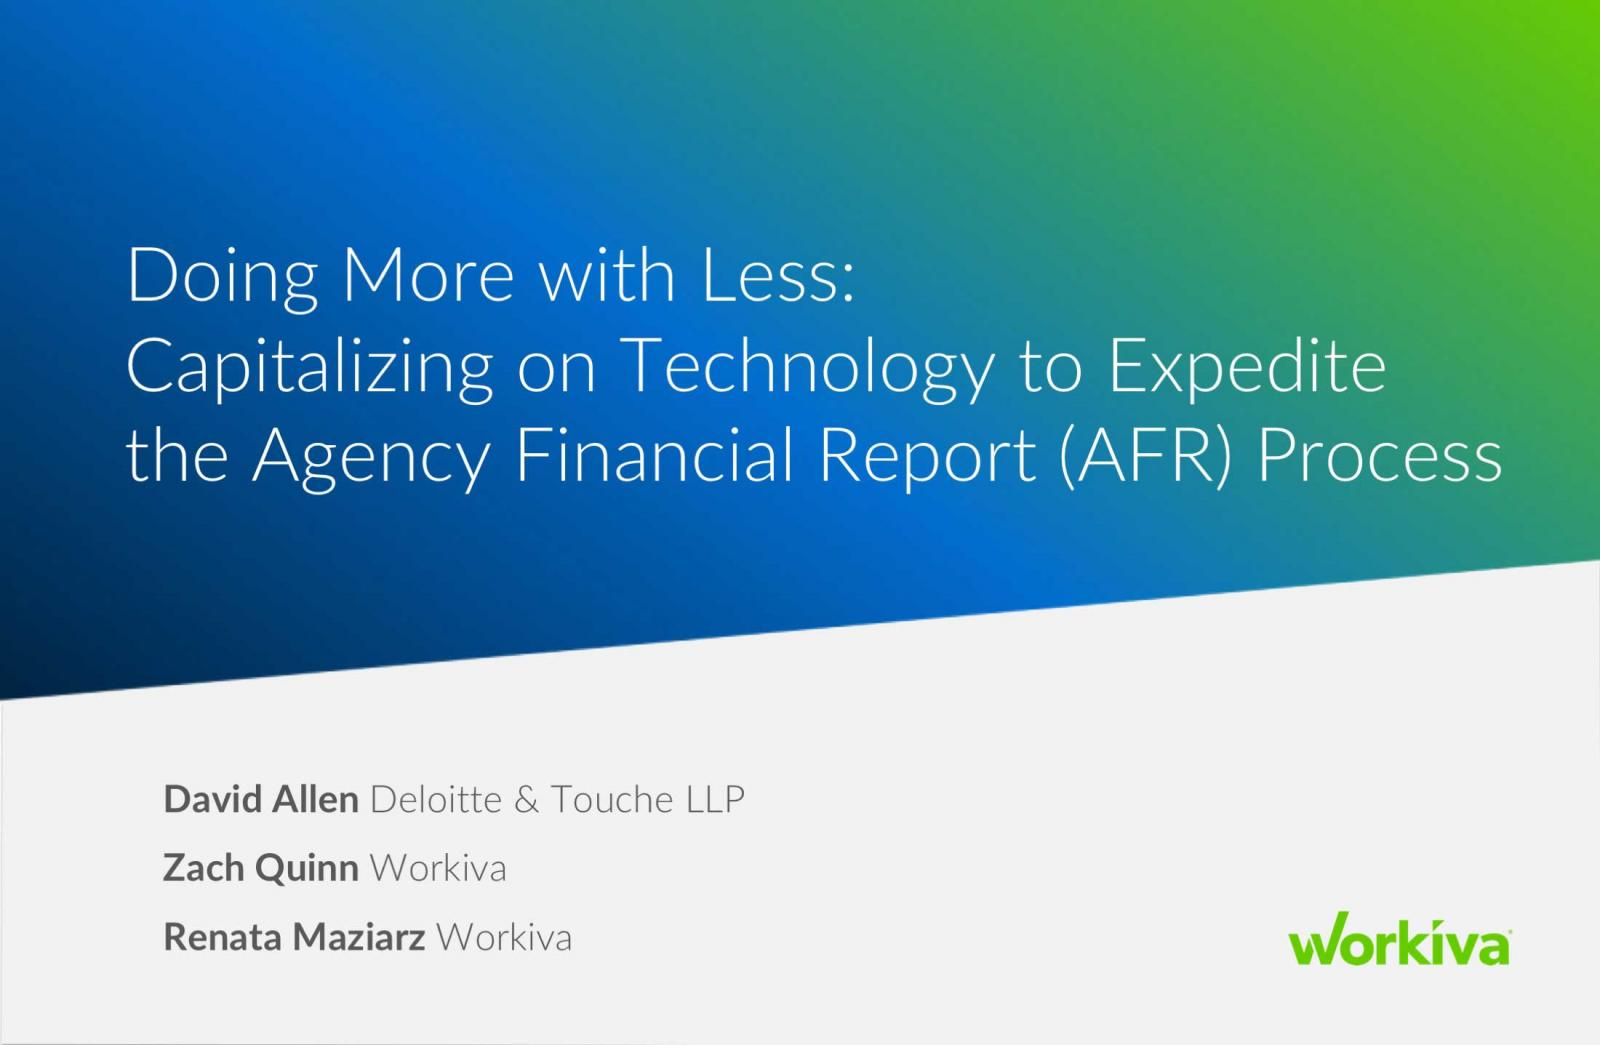 Capitalizing on Technology to Expedite the Agency Financial Report Process